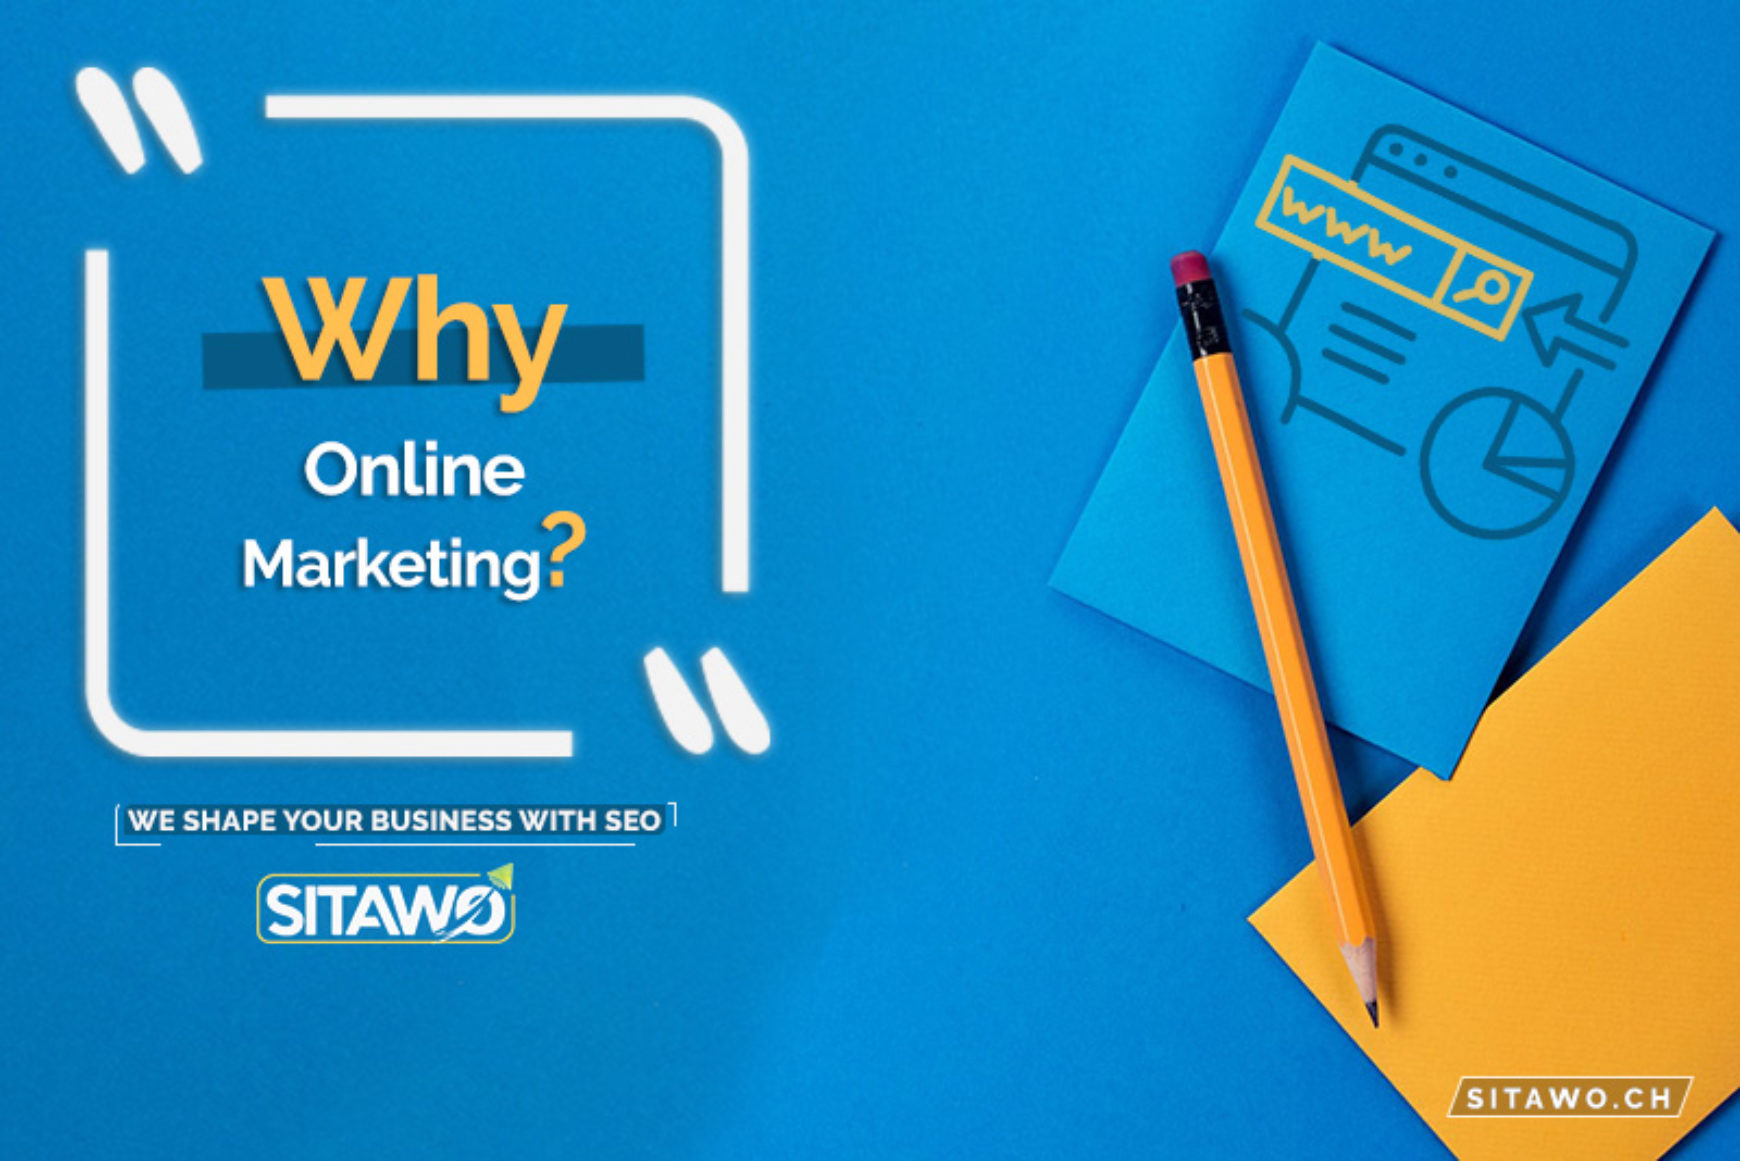 Why Online Marketing?